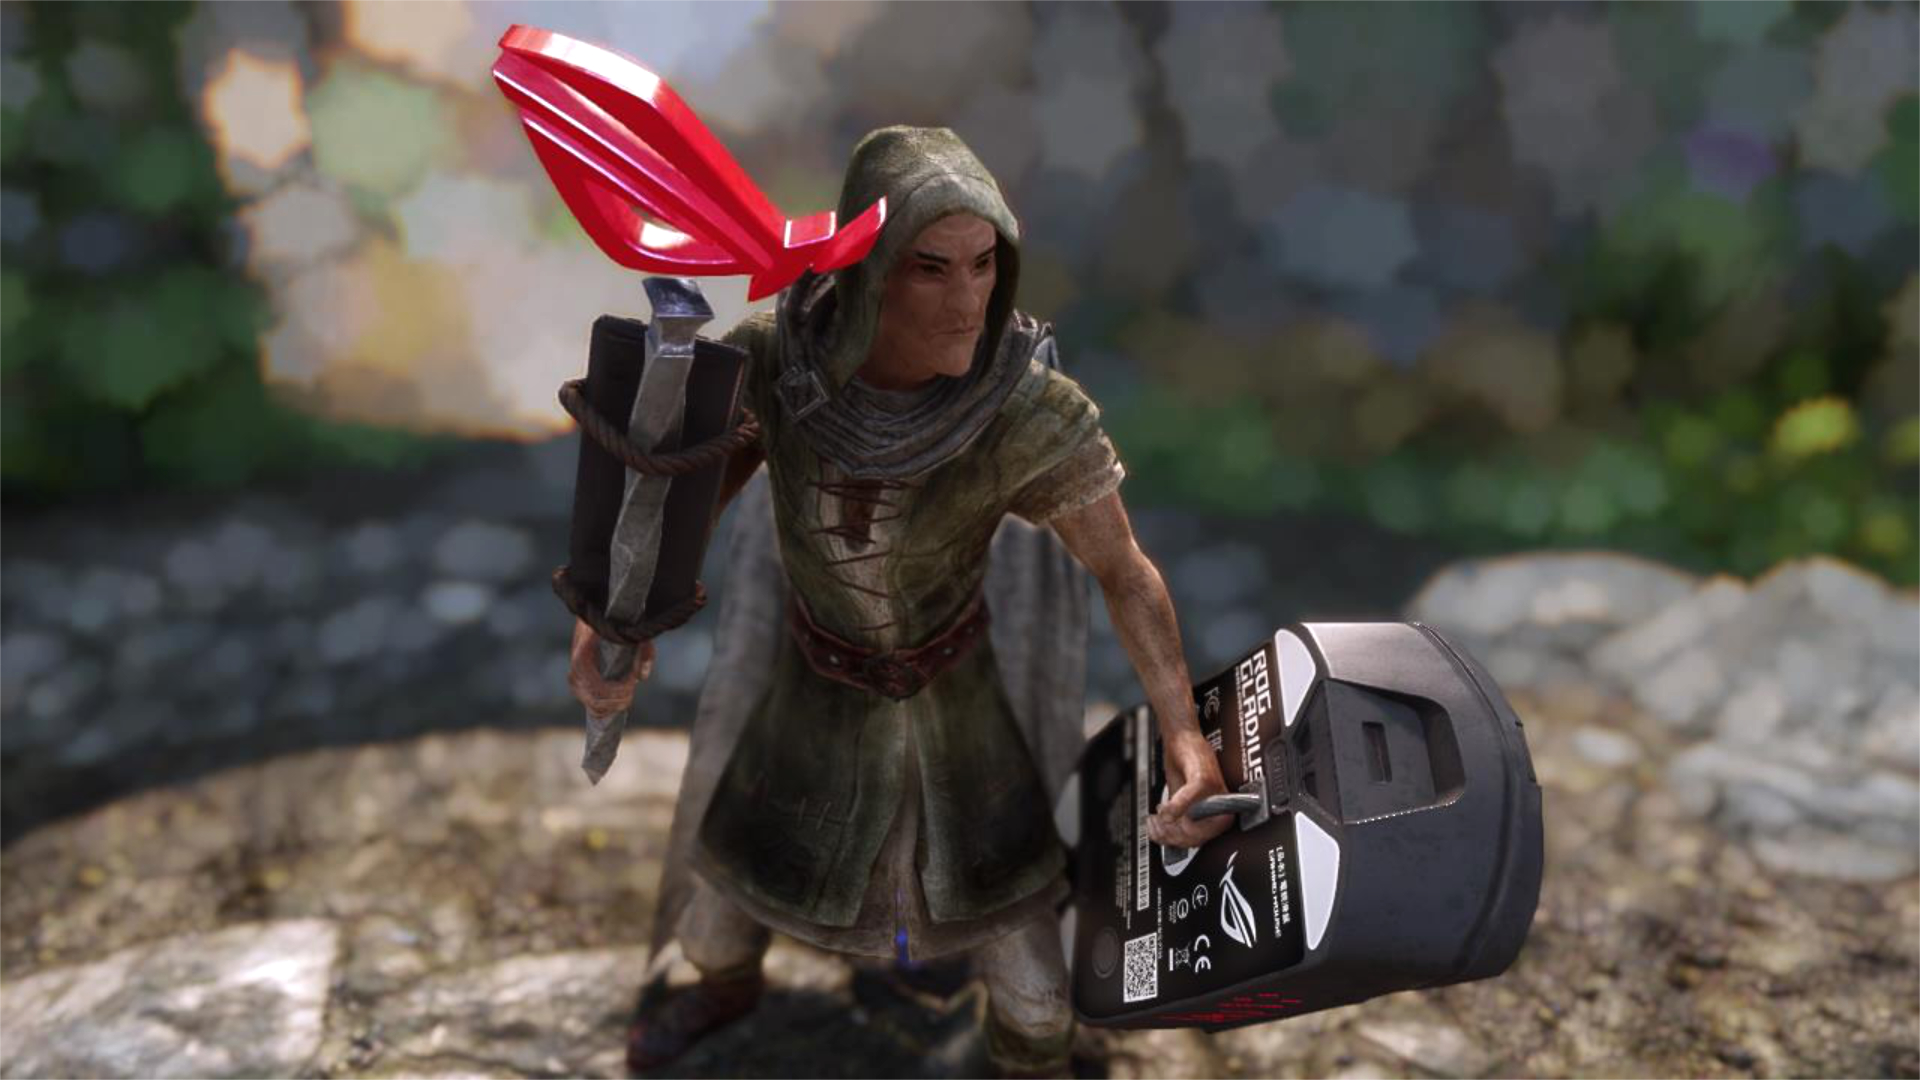 Skyrim mod arms the Dragonborn with an ROG gaming keyboard and mouse